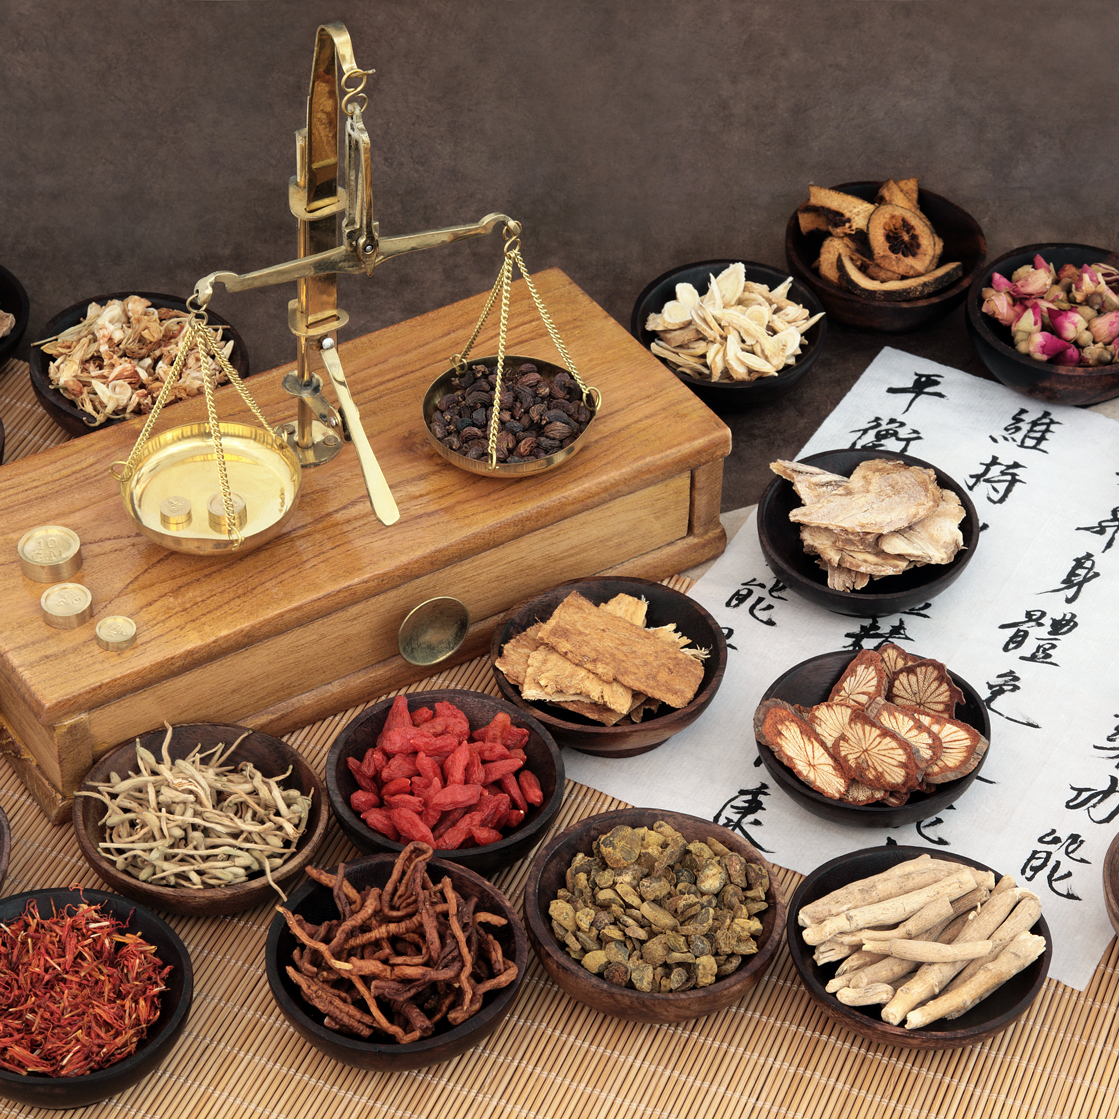 Herbes chinoises - Acupuncture Maguire